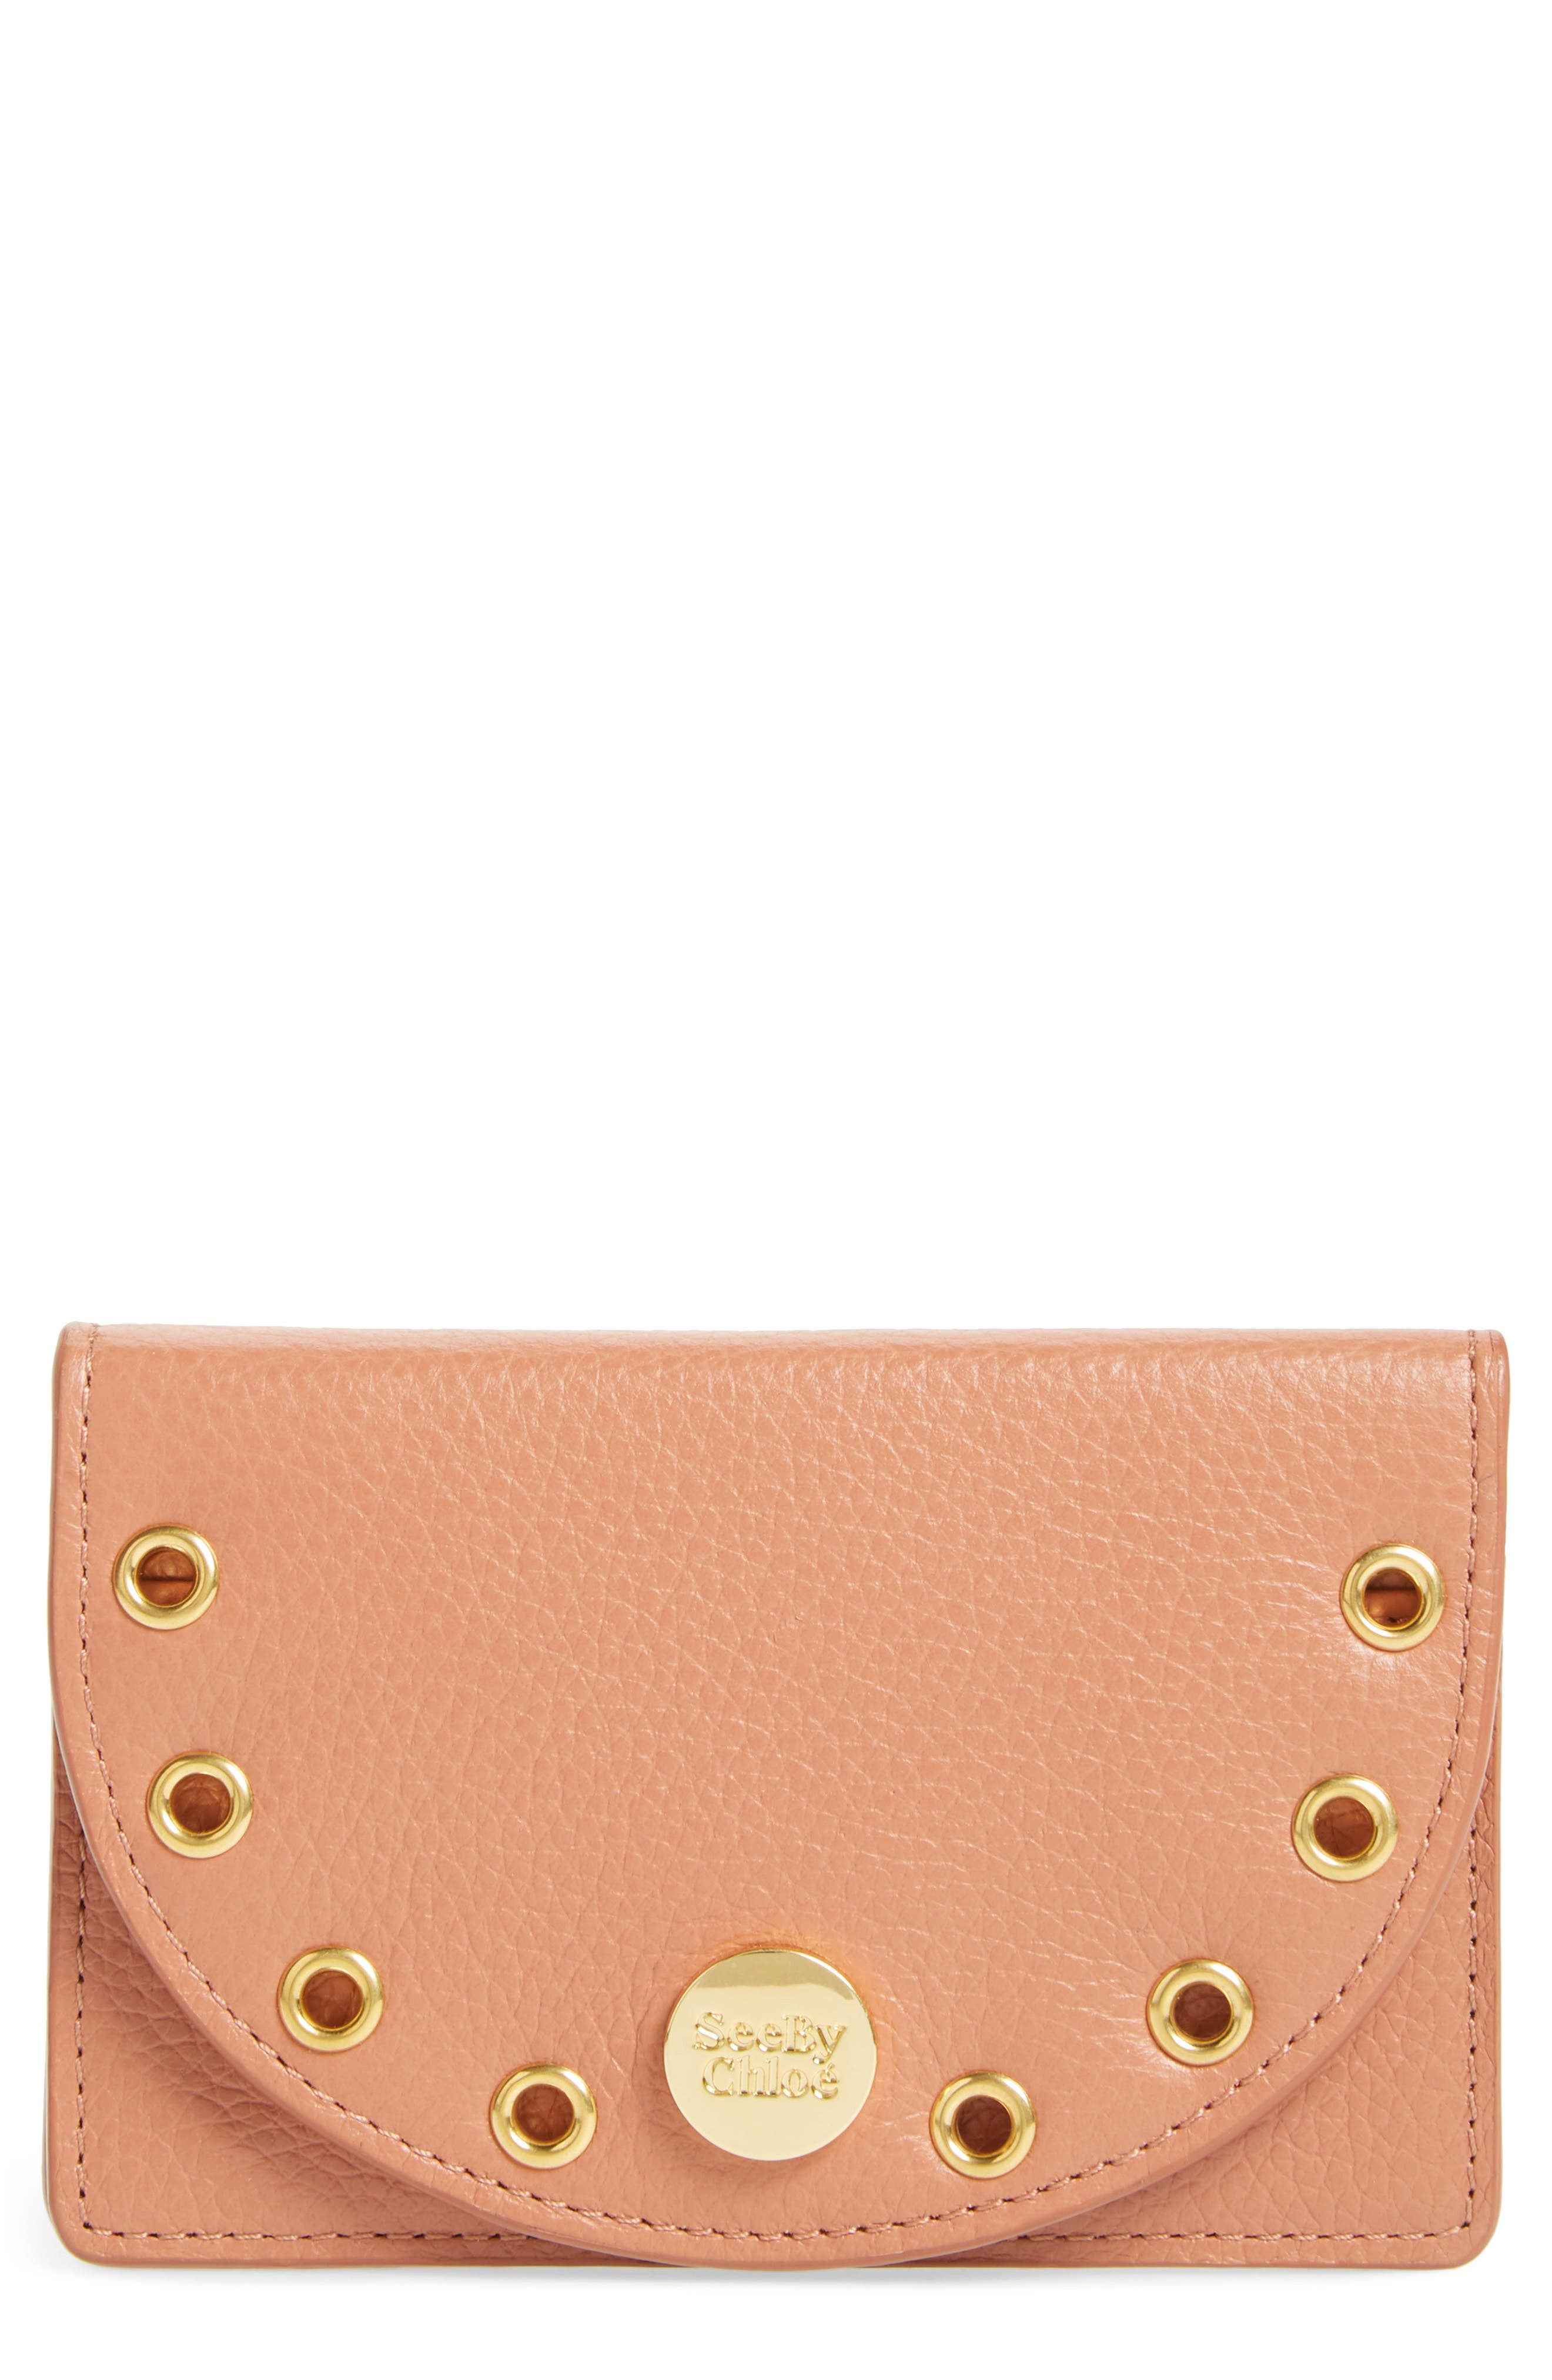 See by Chloé Kriss Grommet Leather Card Wallet